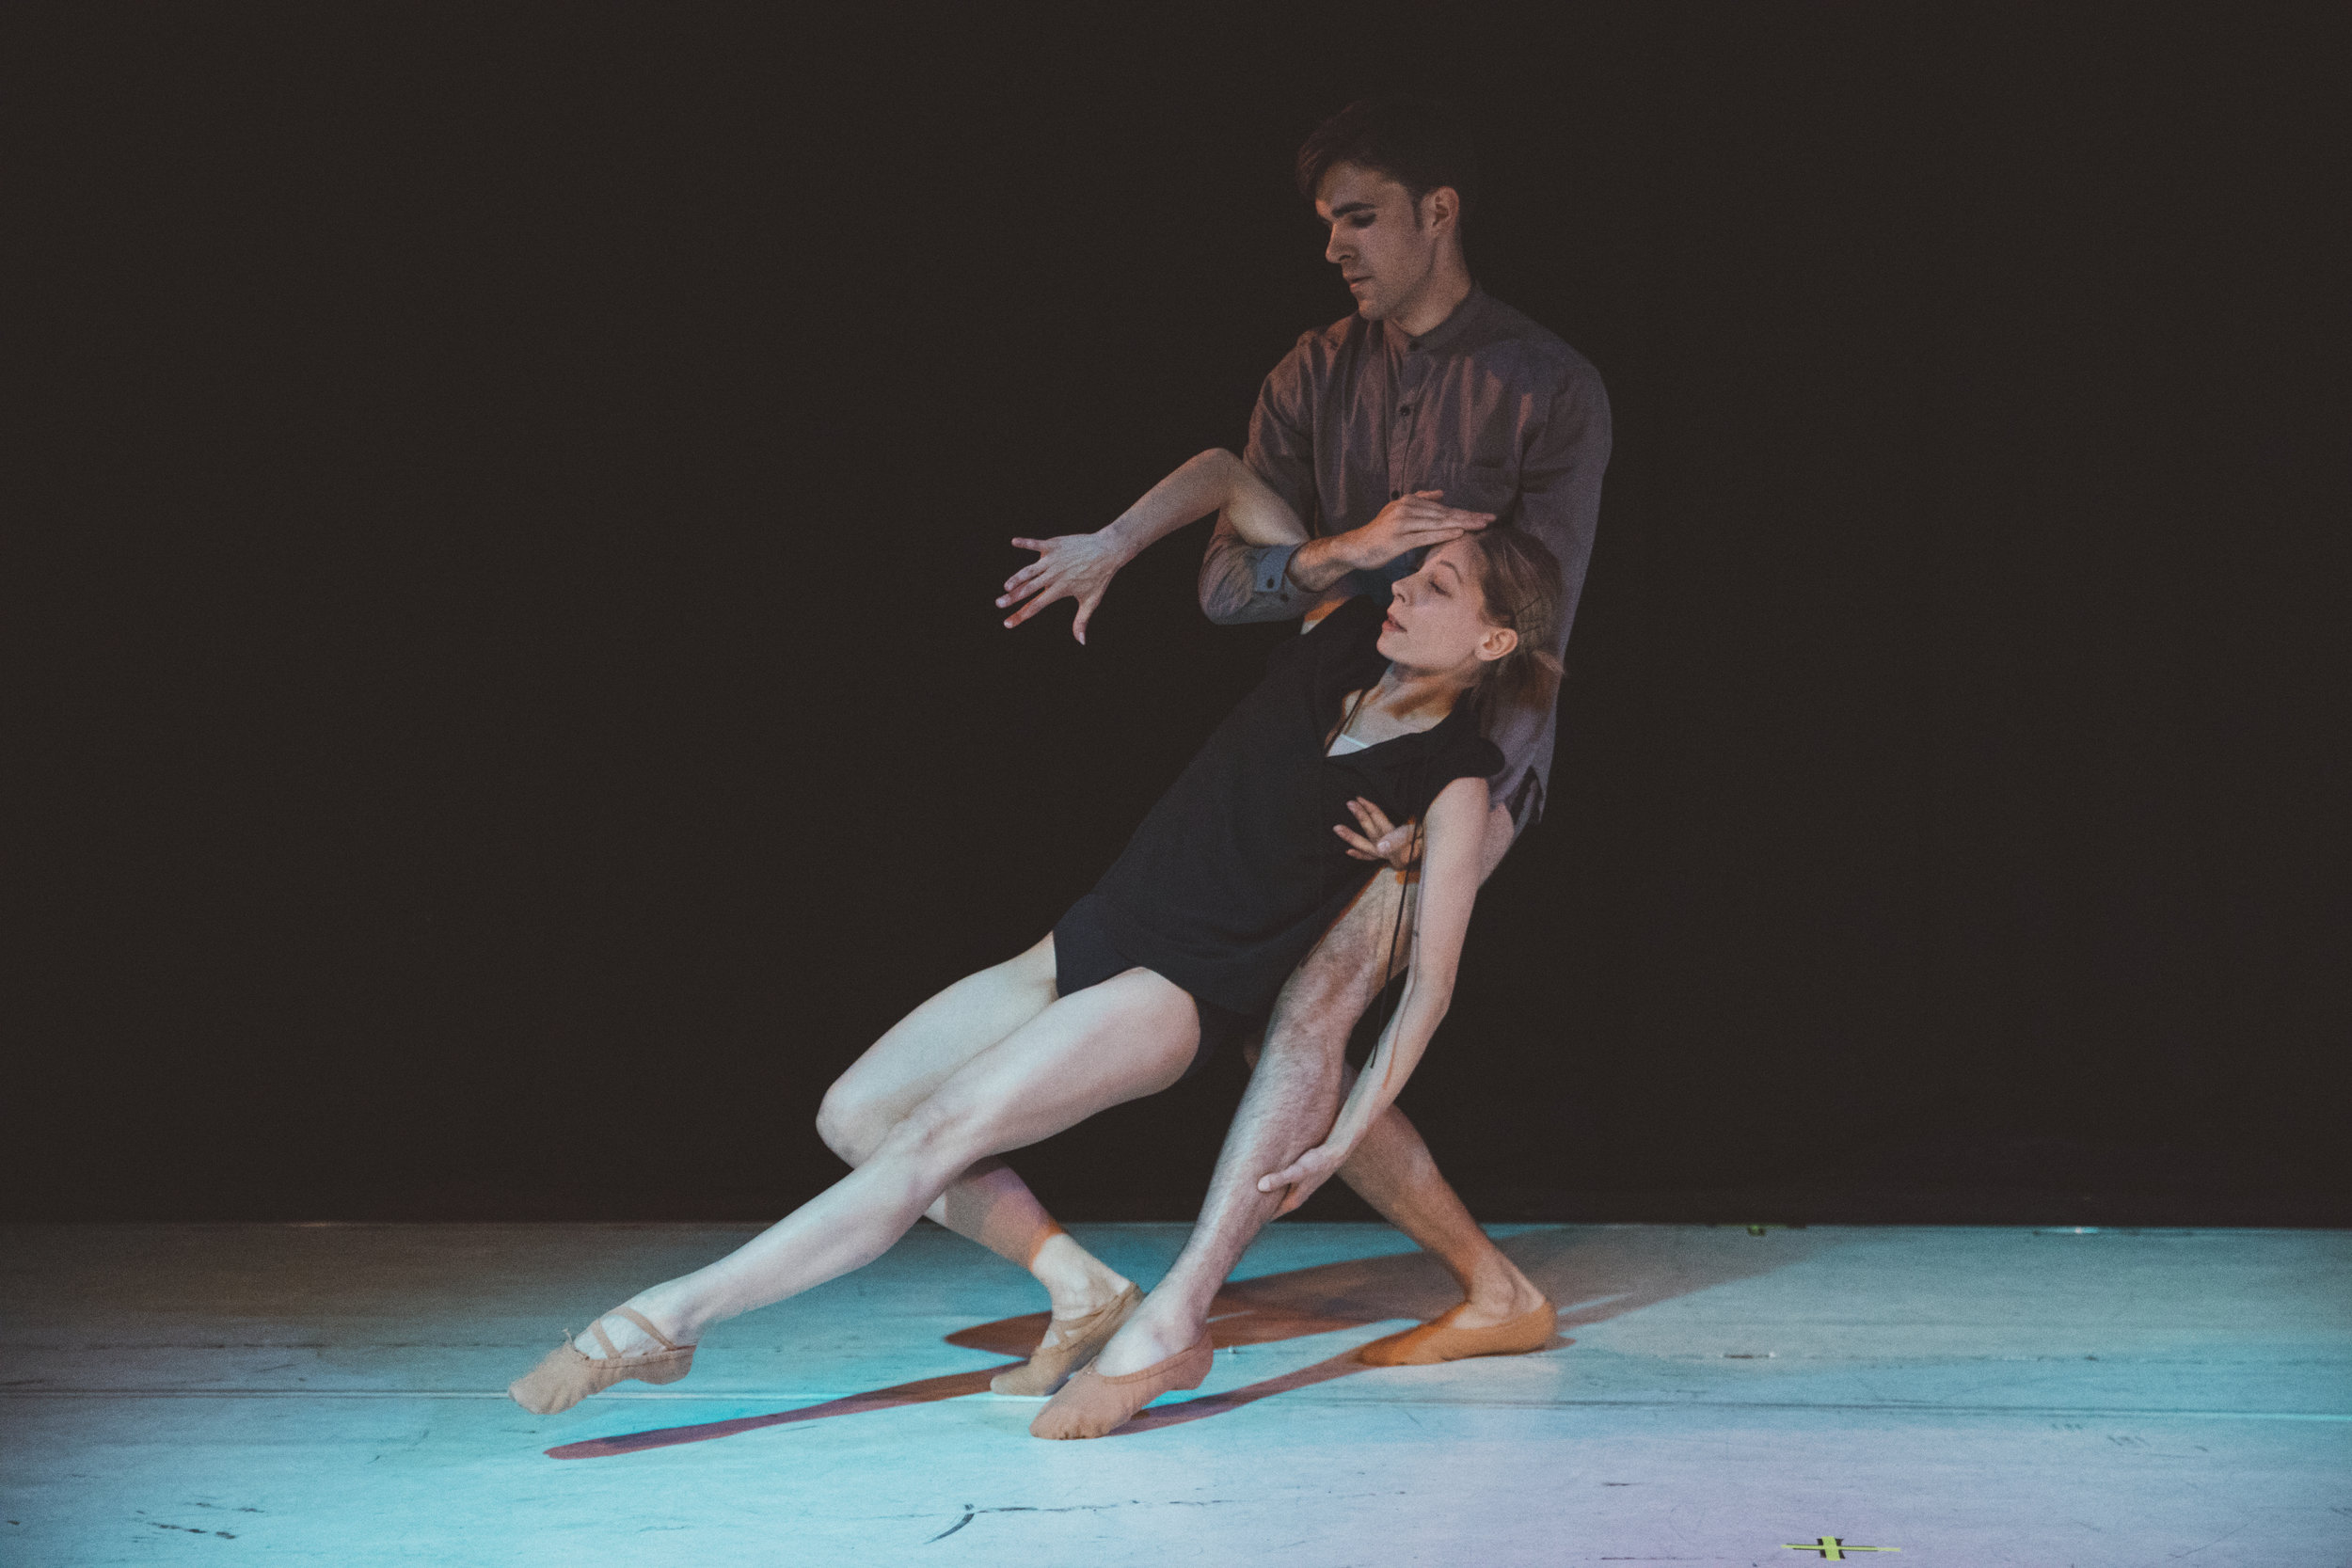 Our Vision - To stimulate the economic, cultural, and educational development of our community through creative excellence and the re-imagining of how concert dance is experienced, accessed, and utilized.